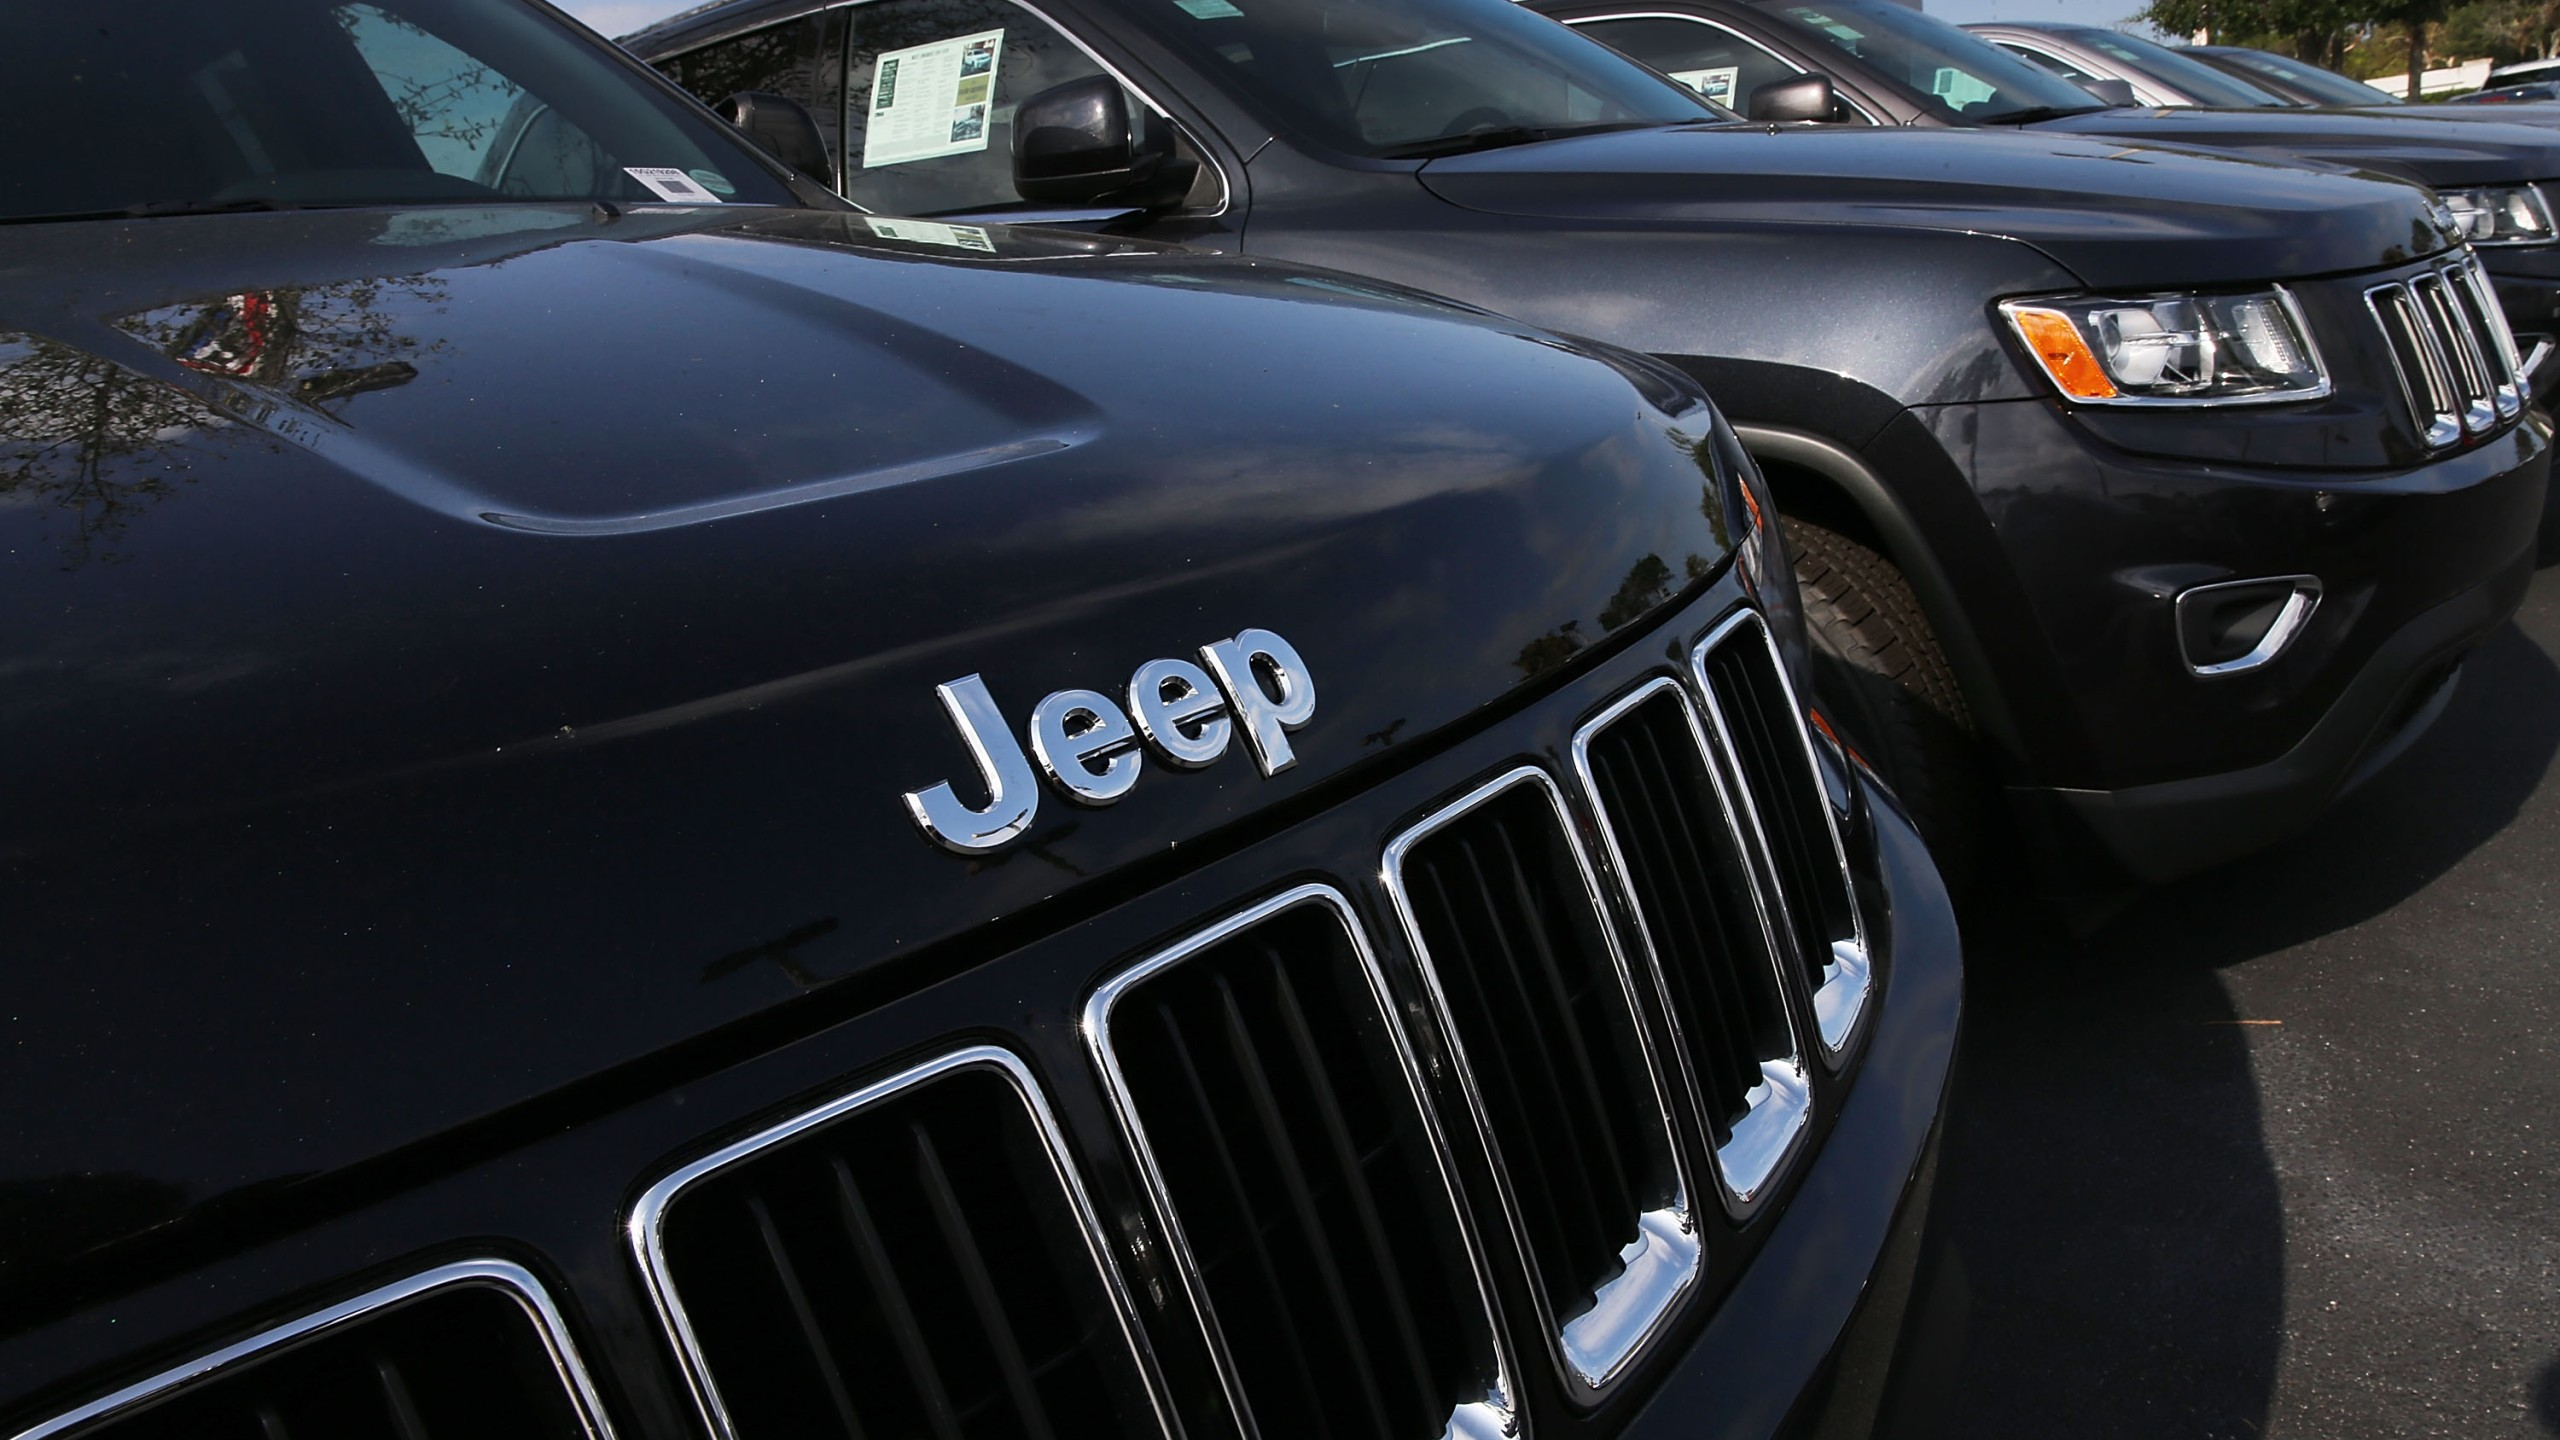 Jeep Grand Cherokee vehicles are seen on a sales lot on April 22, 2016, in Miami, Florida. (Credit: Joe Raedle/Getty Images)